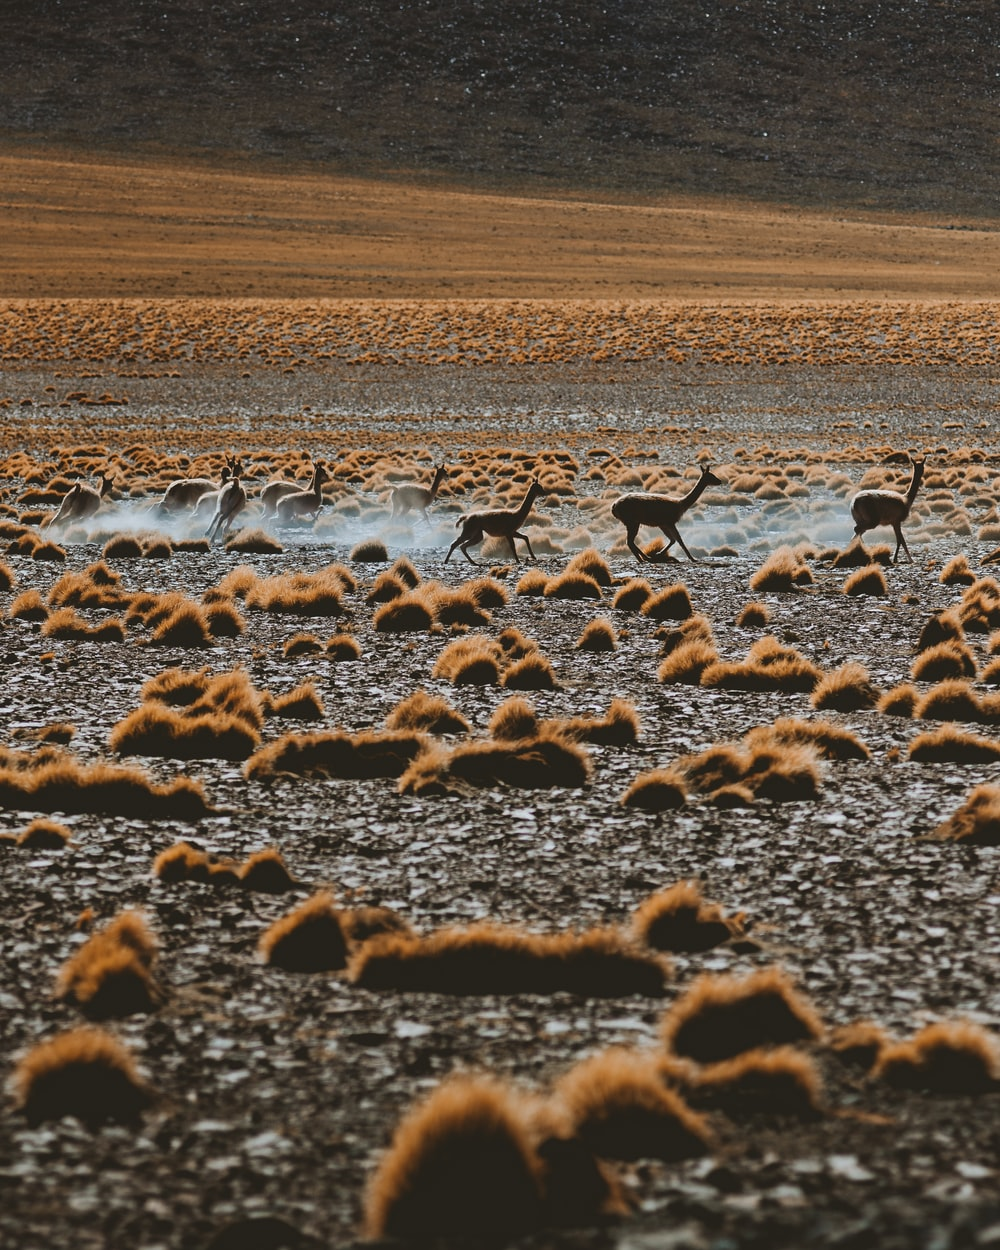 flock of birds on brown field during daytime